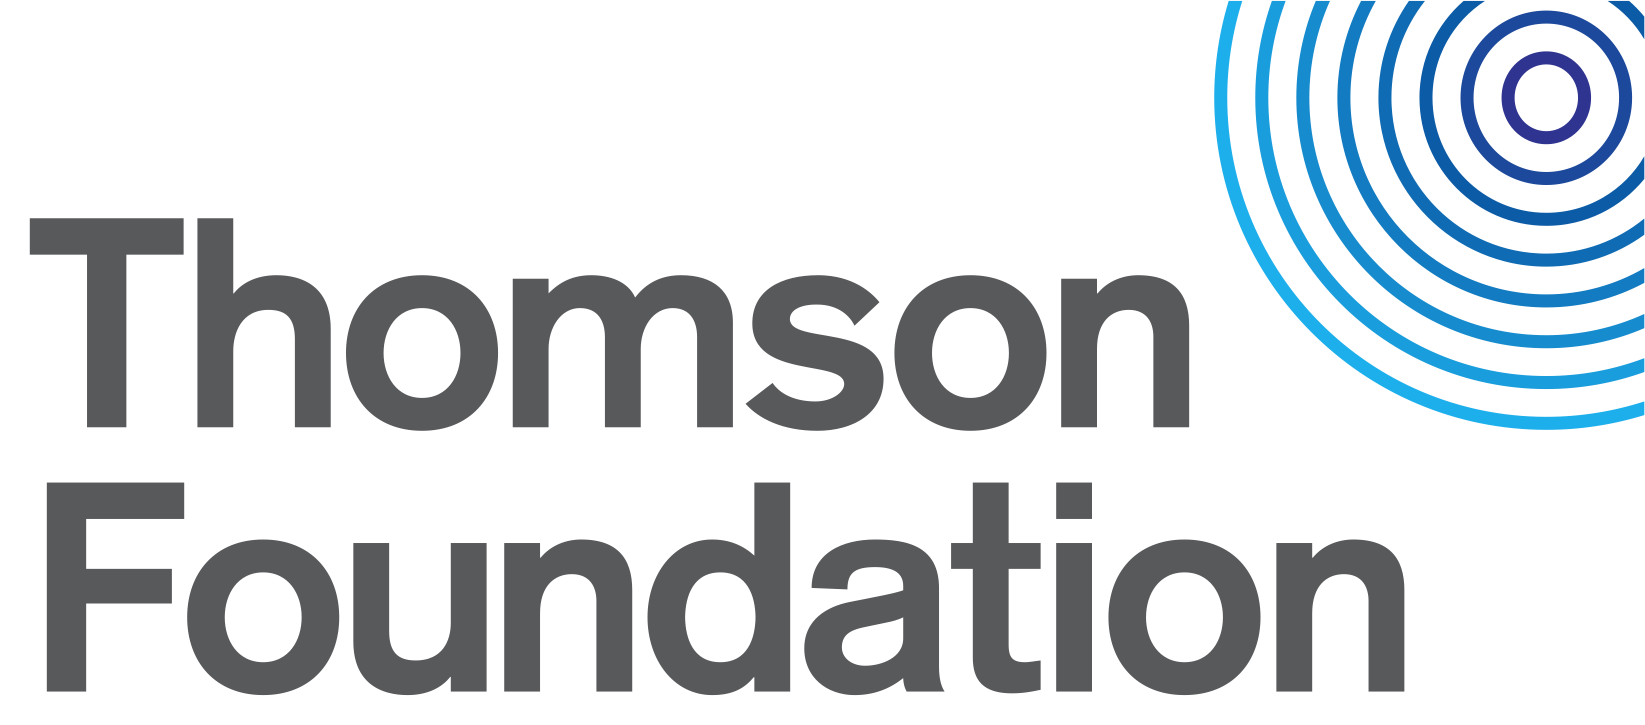 thomson-foundation-big.png